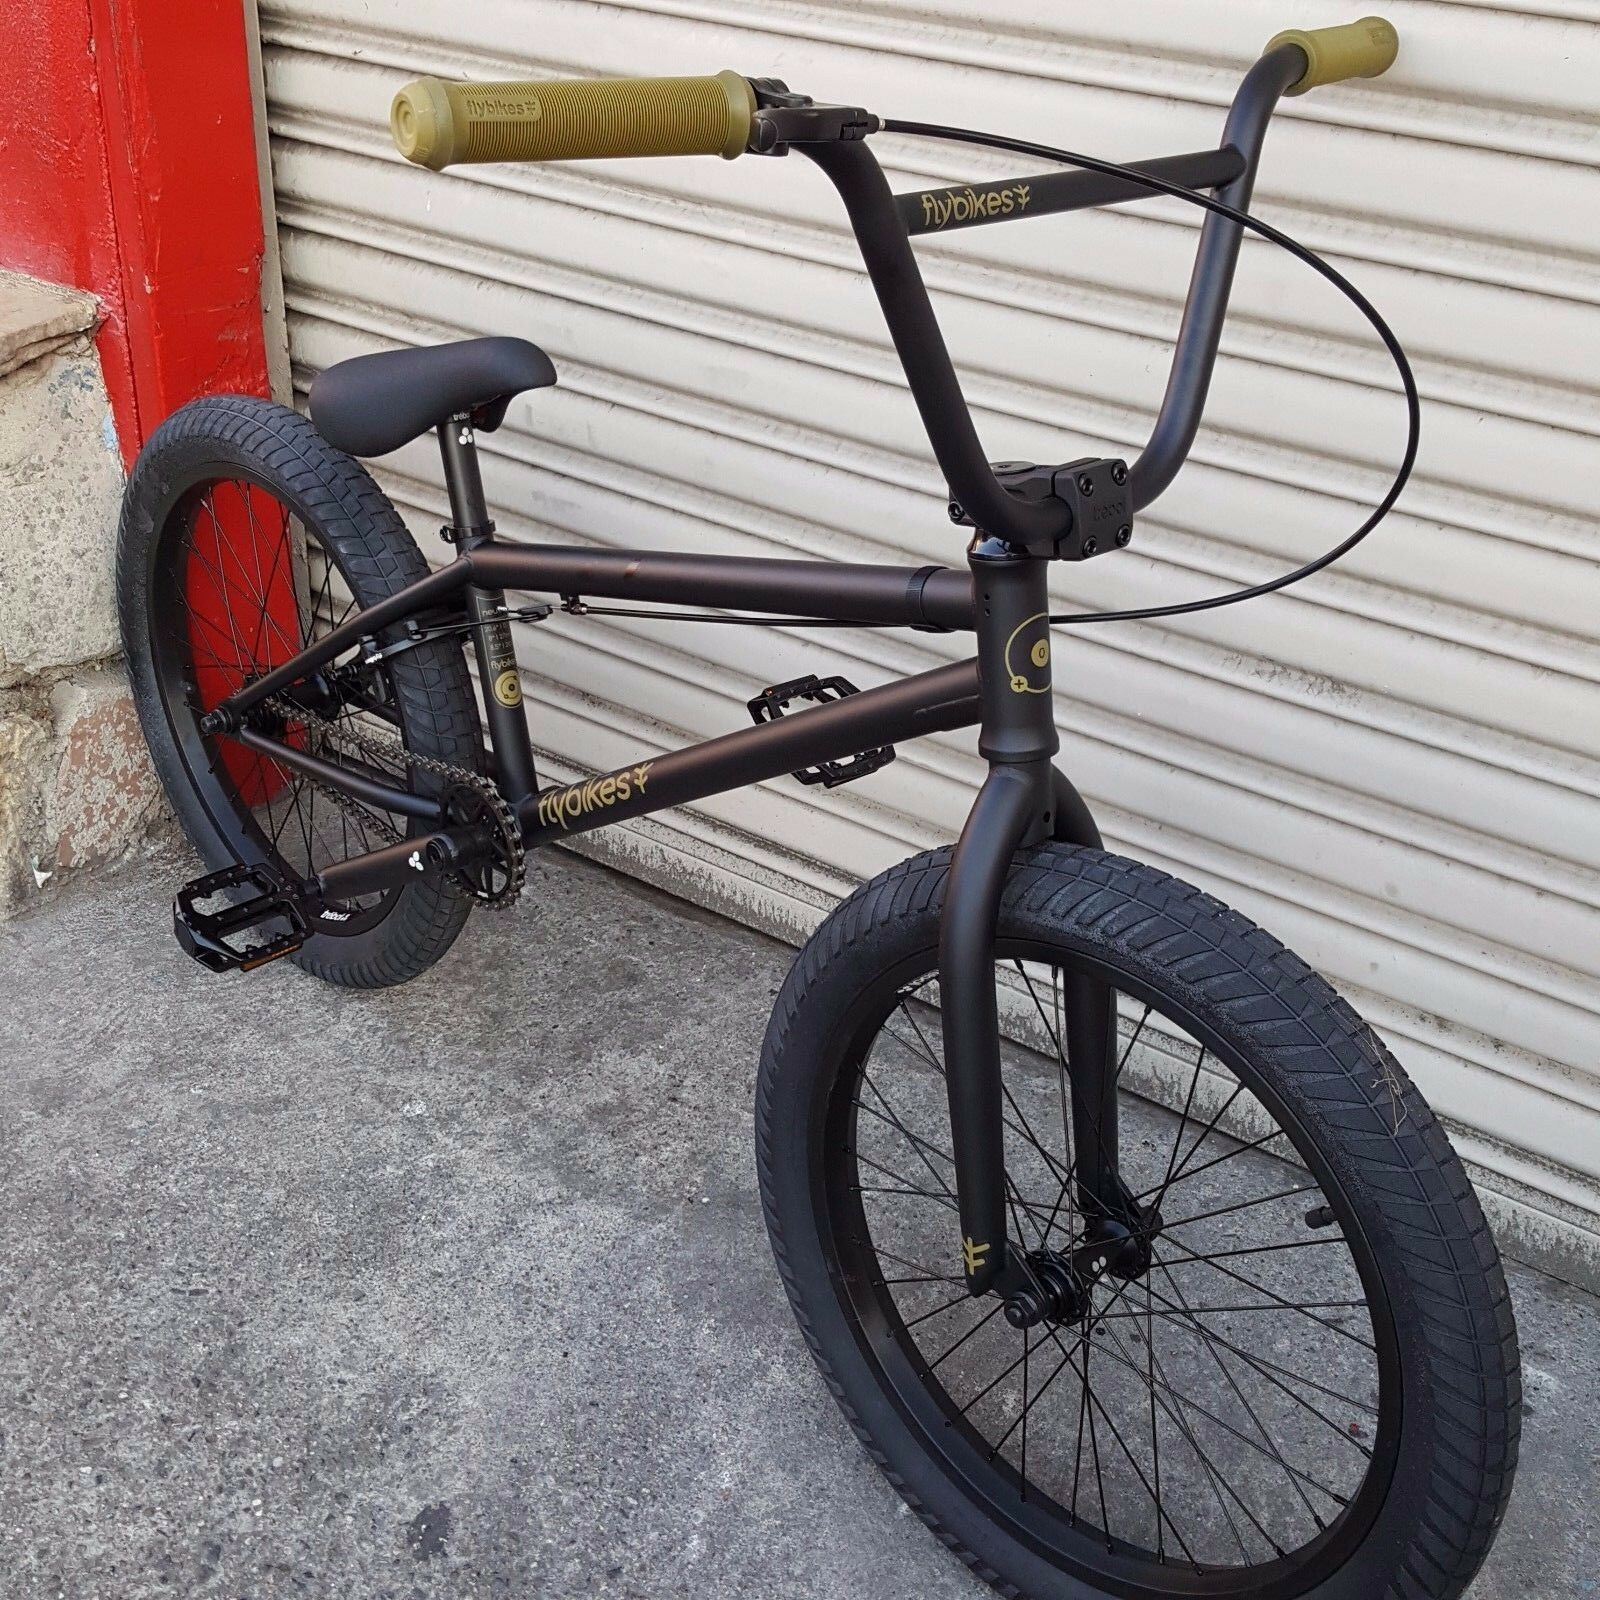 "2015 FLYBIKES BMX BIKE NEUTRON 20"" BLACK BICYCLE FIT CULT"